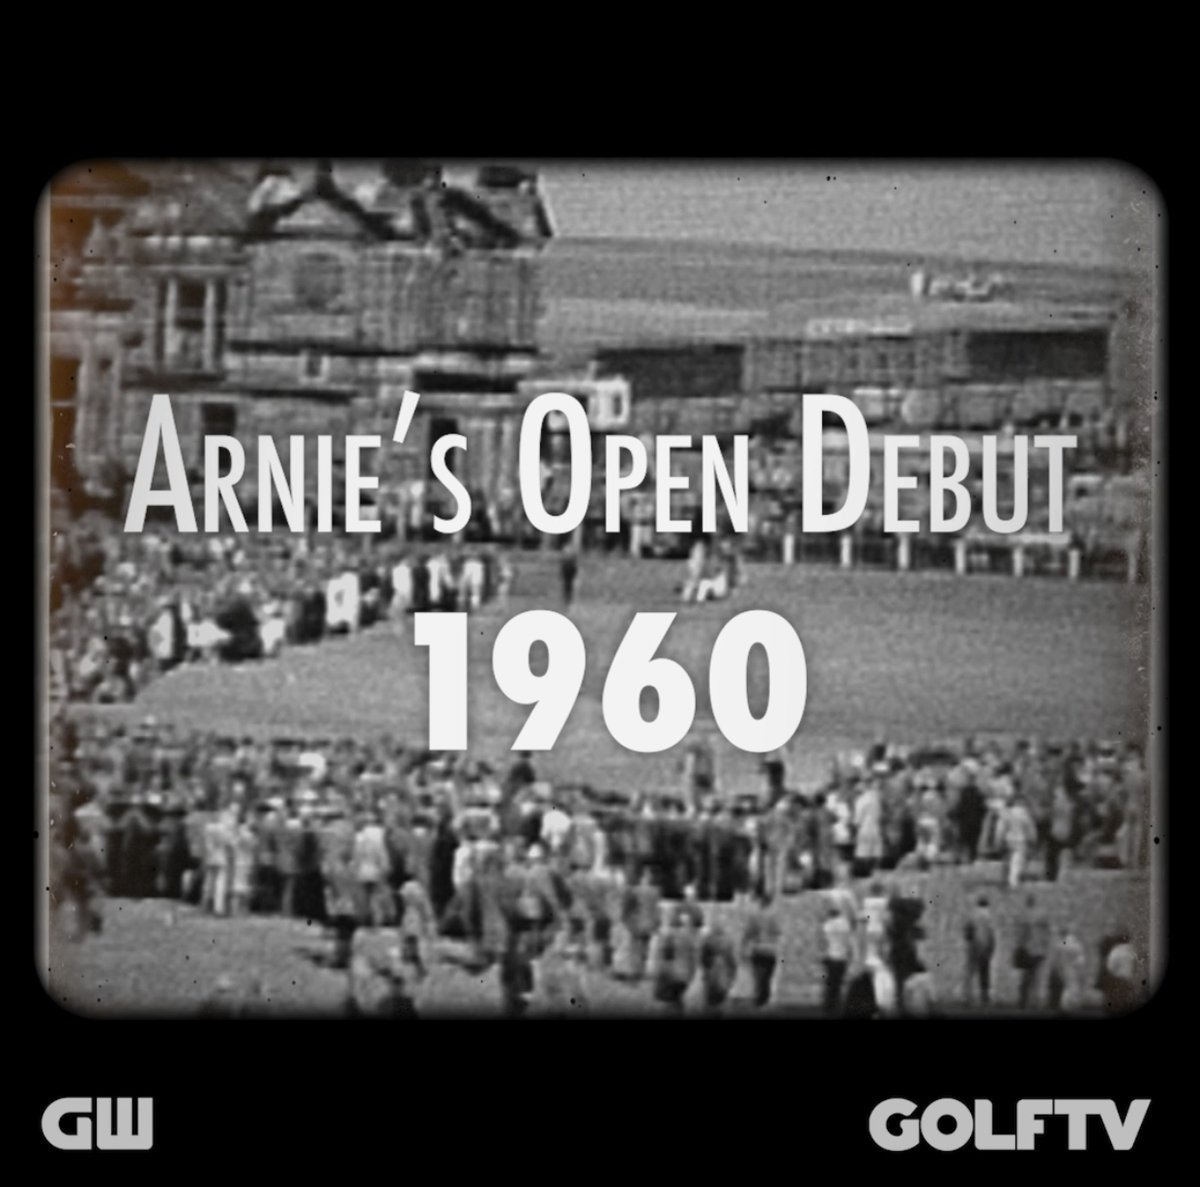 🗓 #OnThisDay 60 years ago A 30-year-old Arnold Palmer made his debut at @TheOpen Championship at St. Andrews.